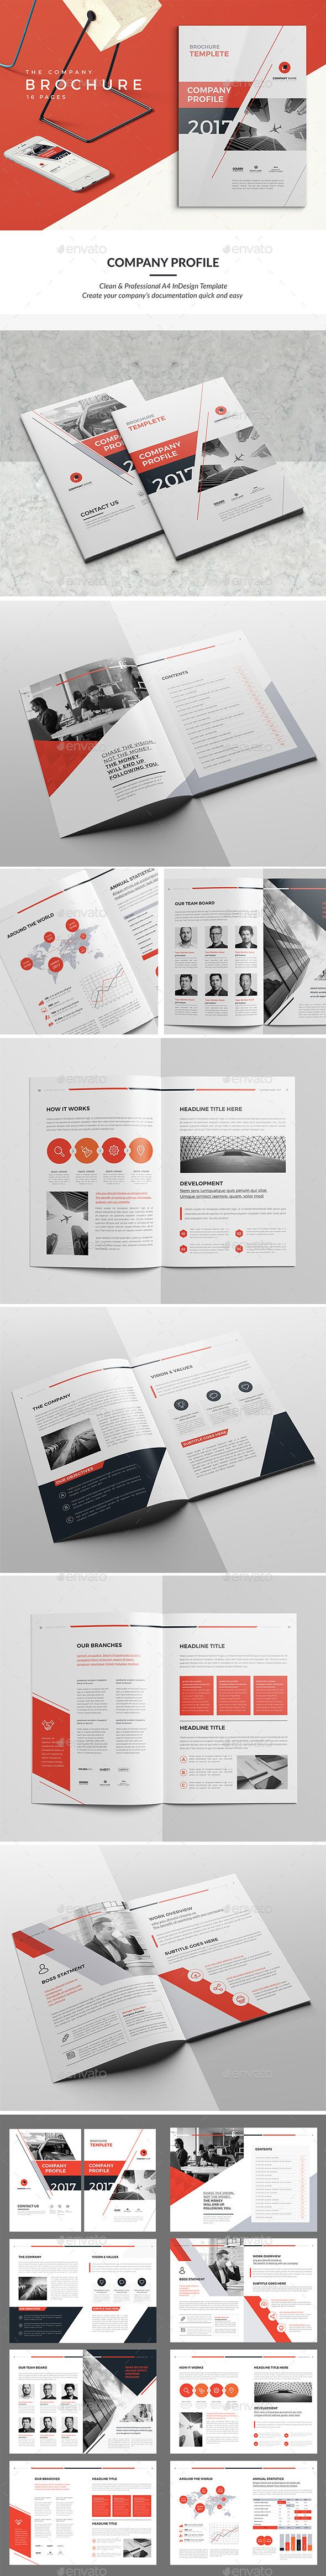 Company Profile 2017 — InDesign INDD #210x297 #visual